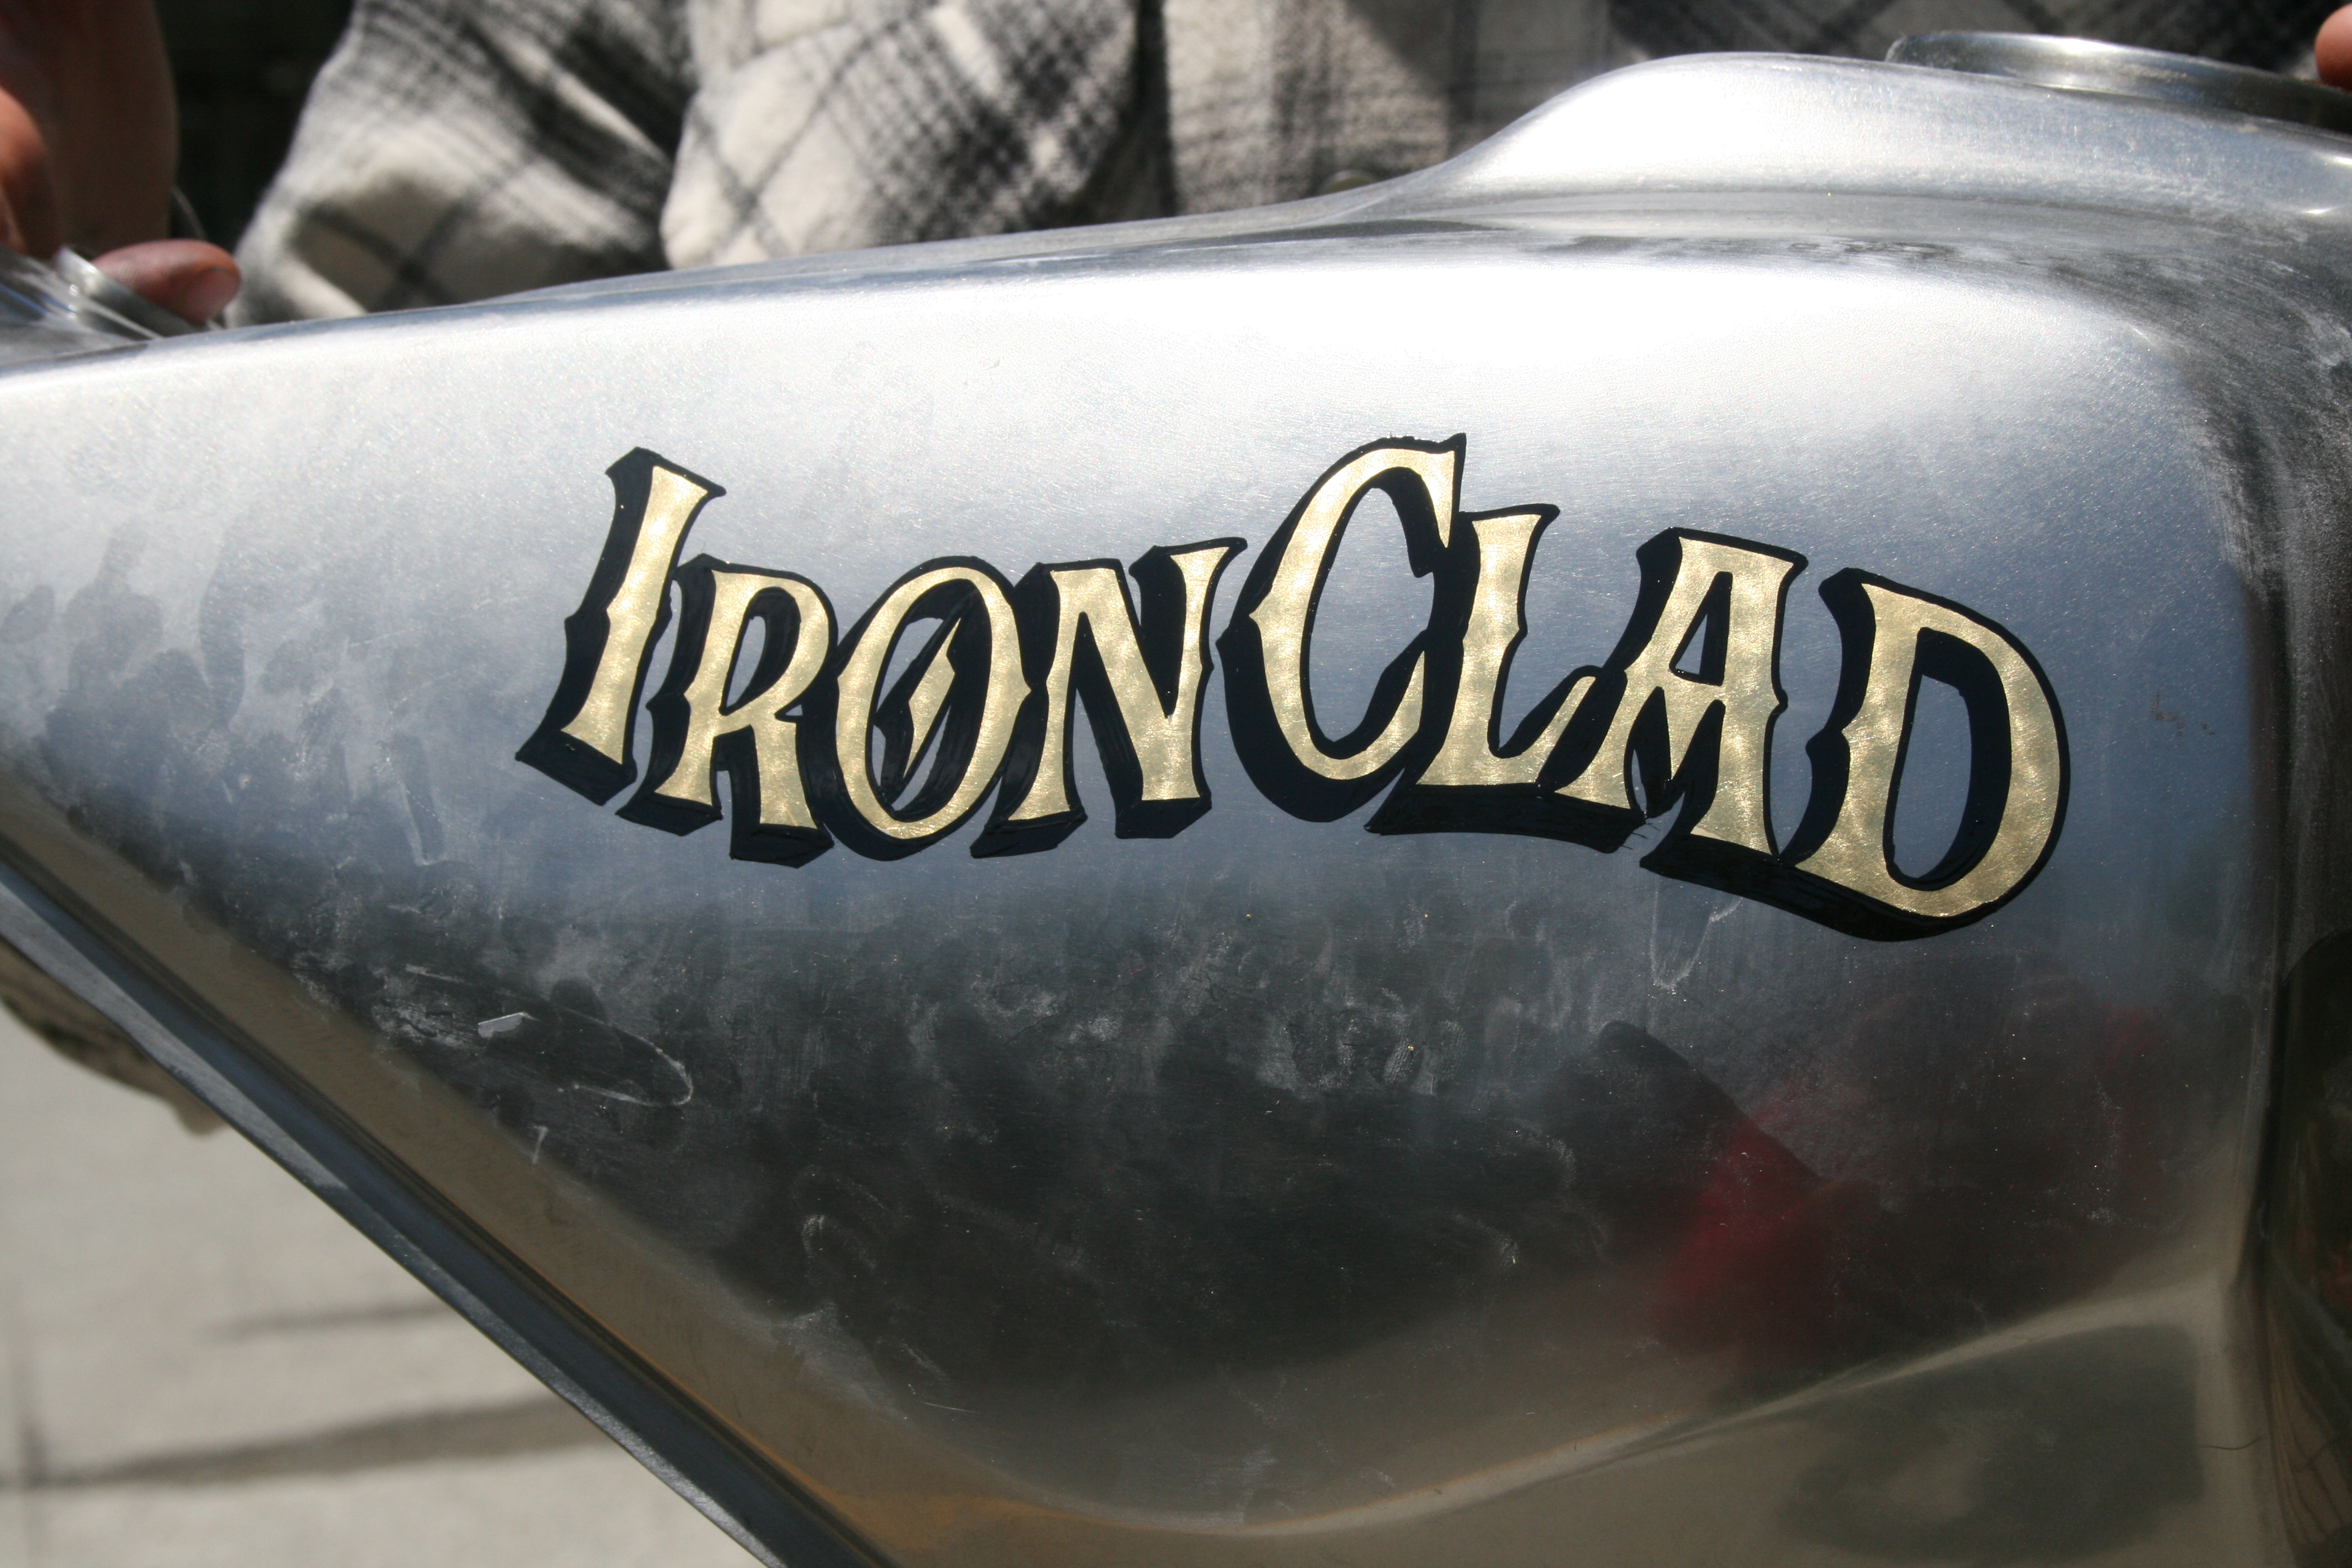 Gold Leaf on motorcycle tank